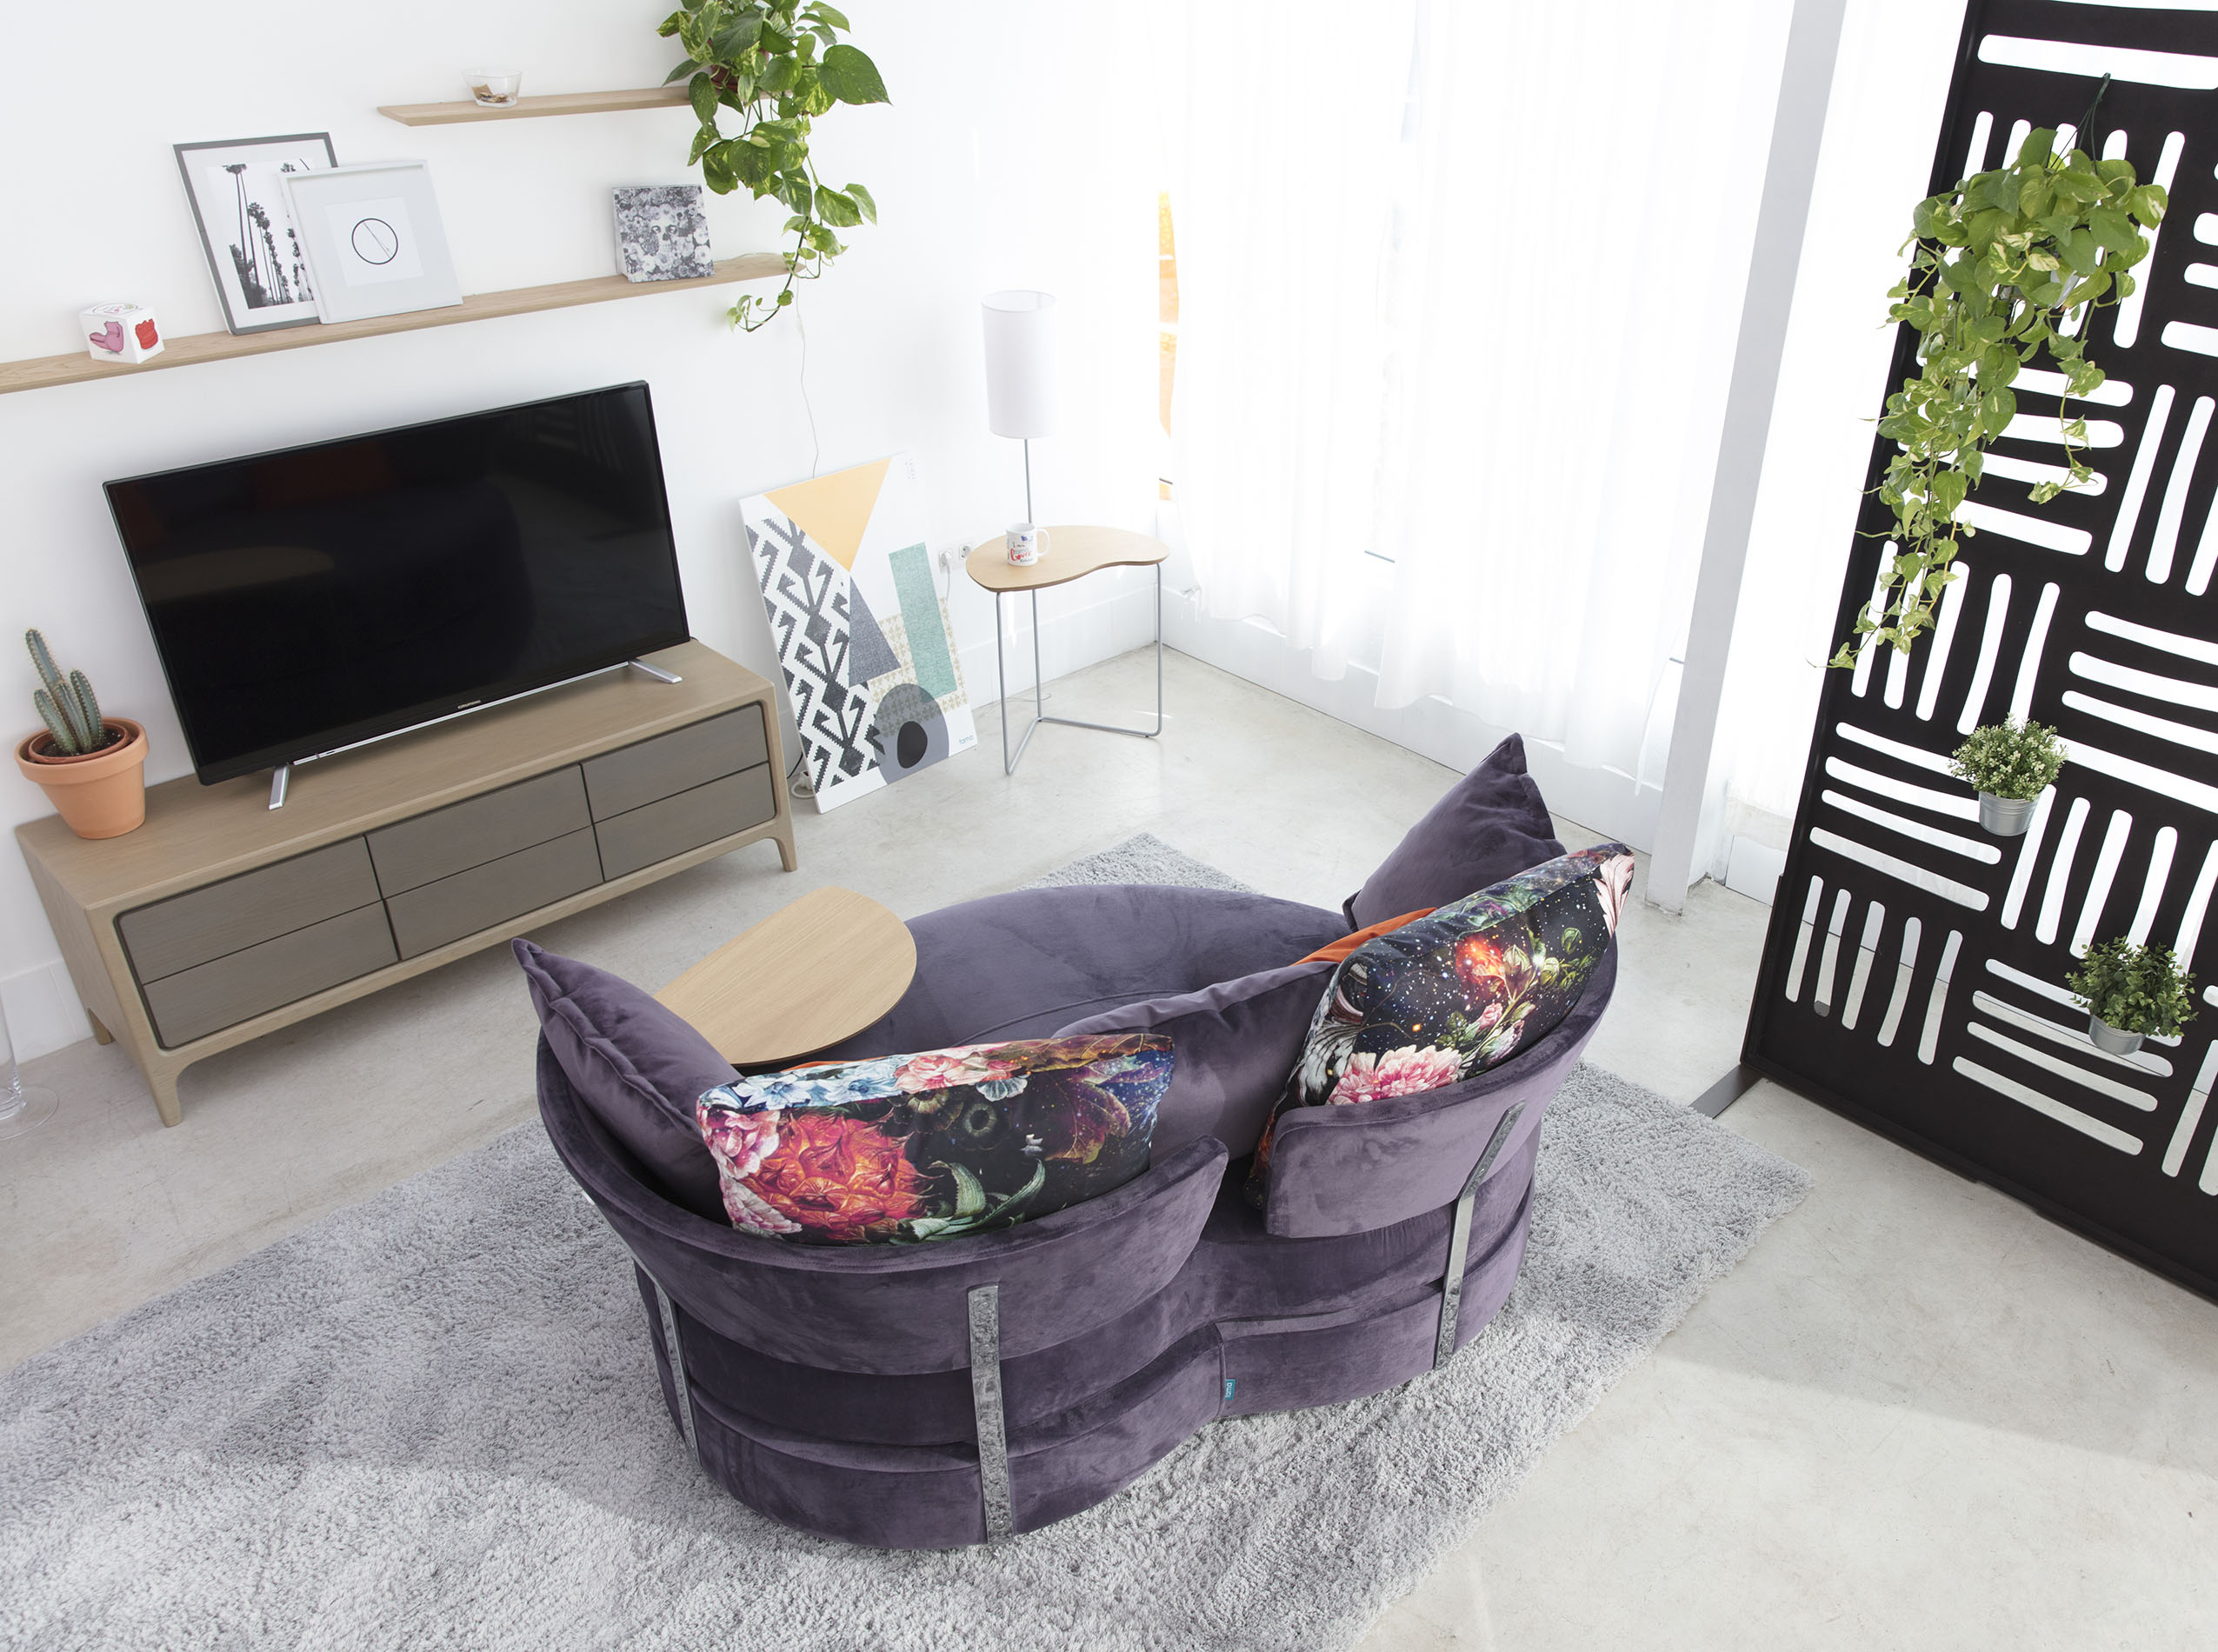 velvet armchair back side view low height with no legs,